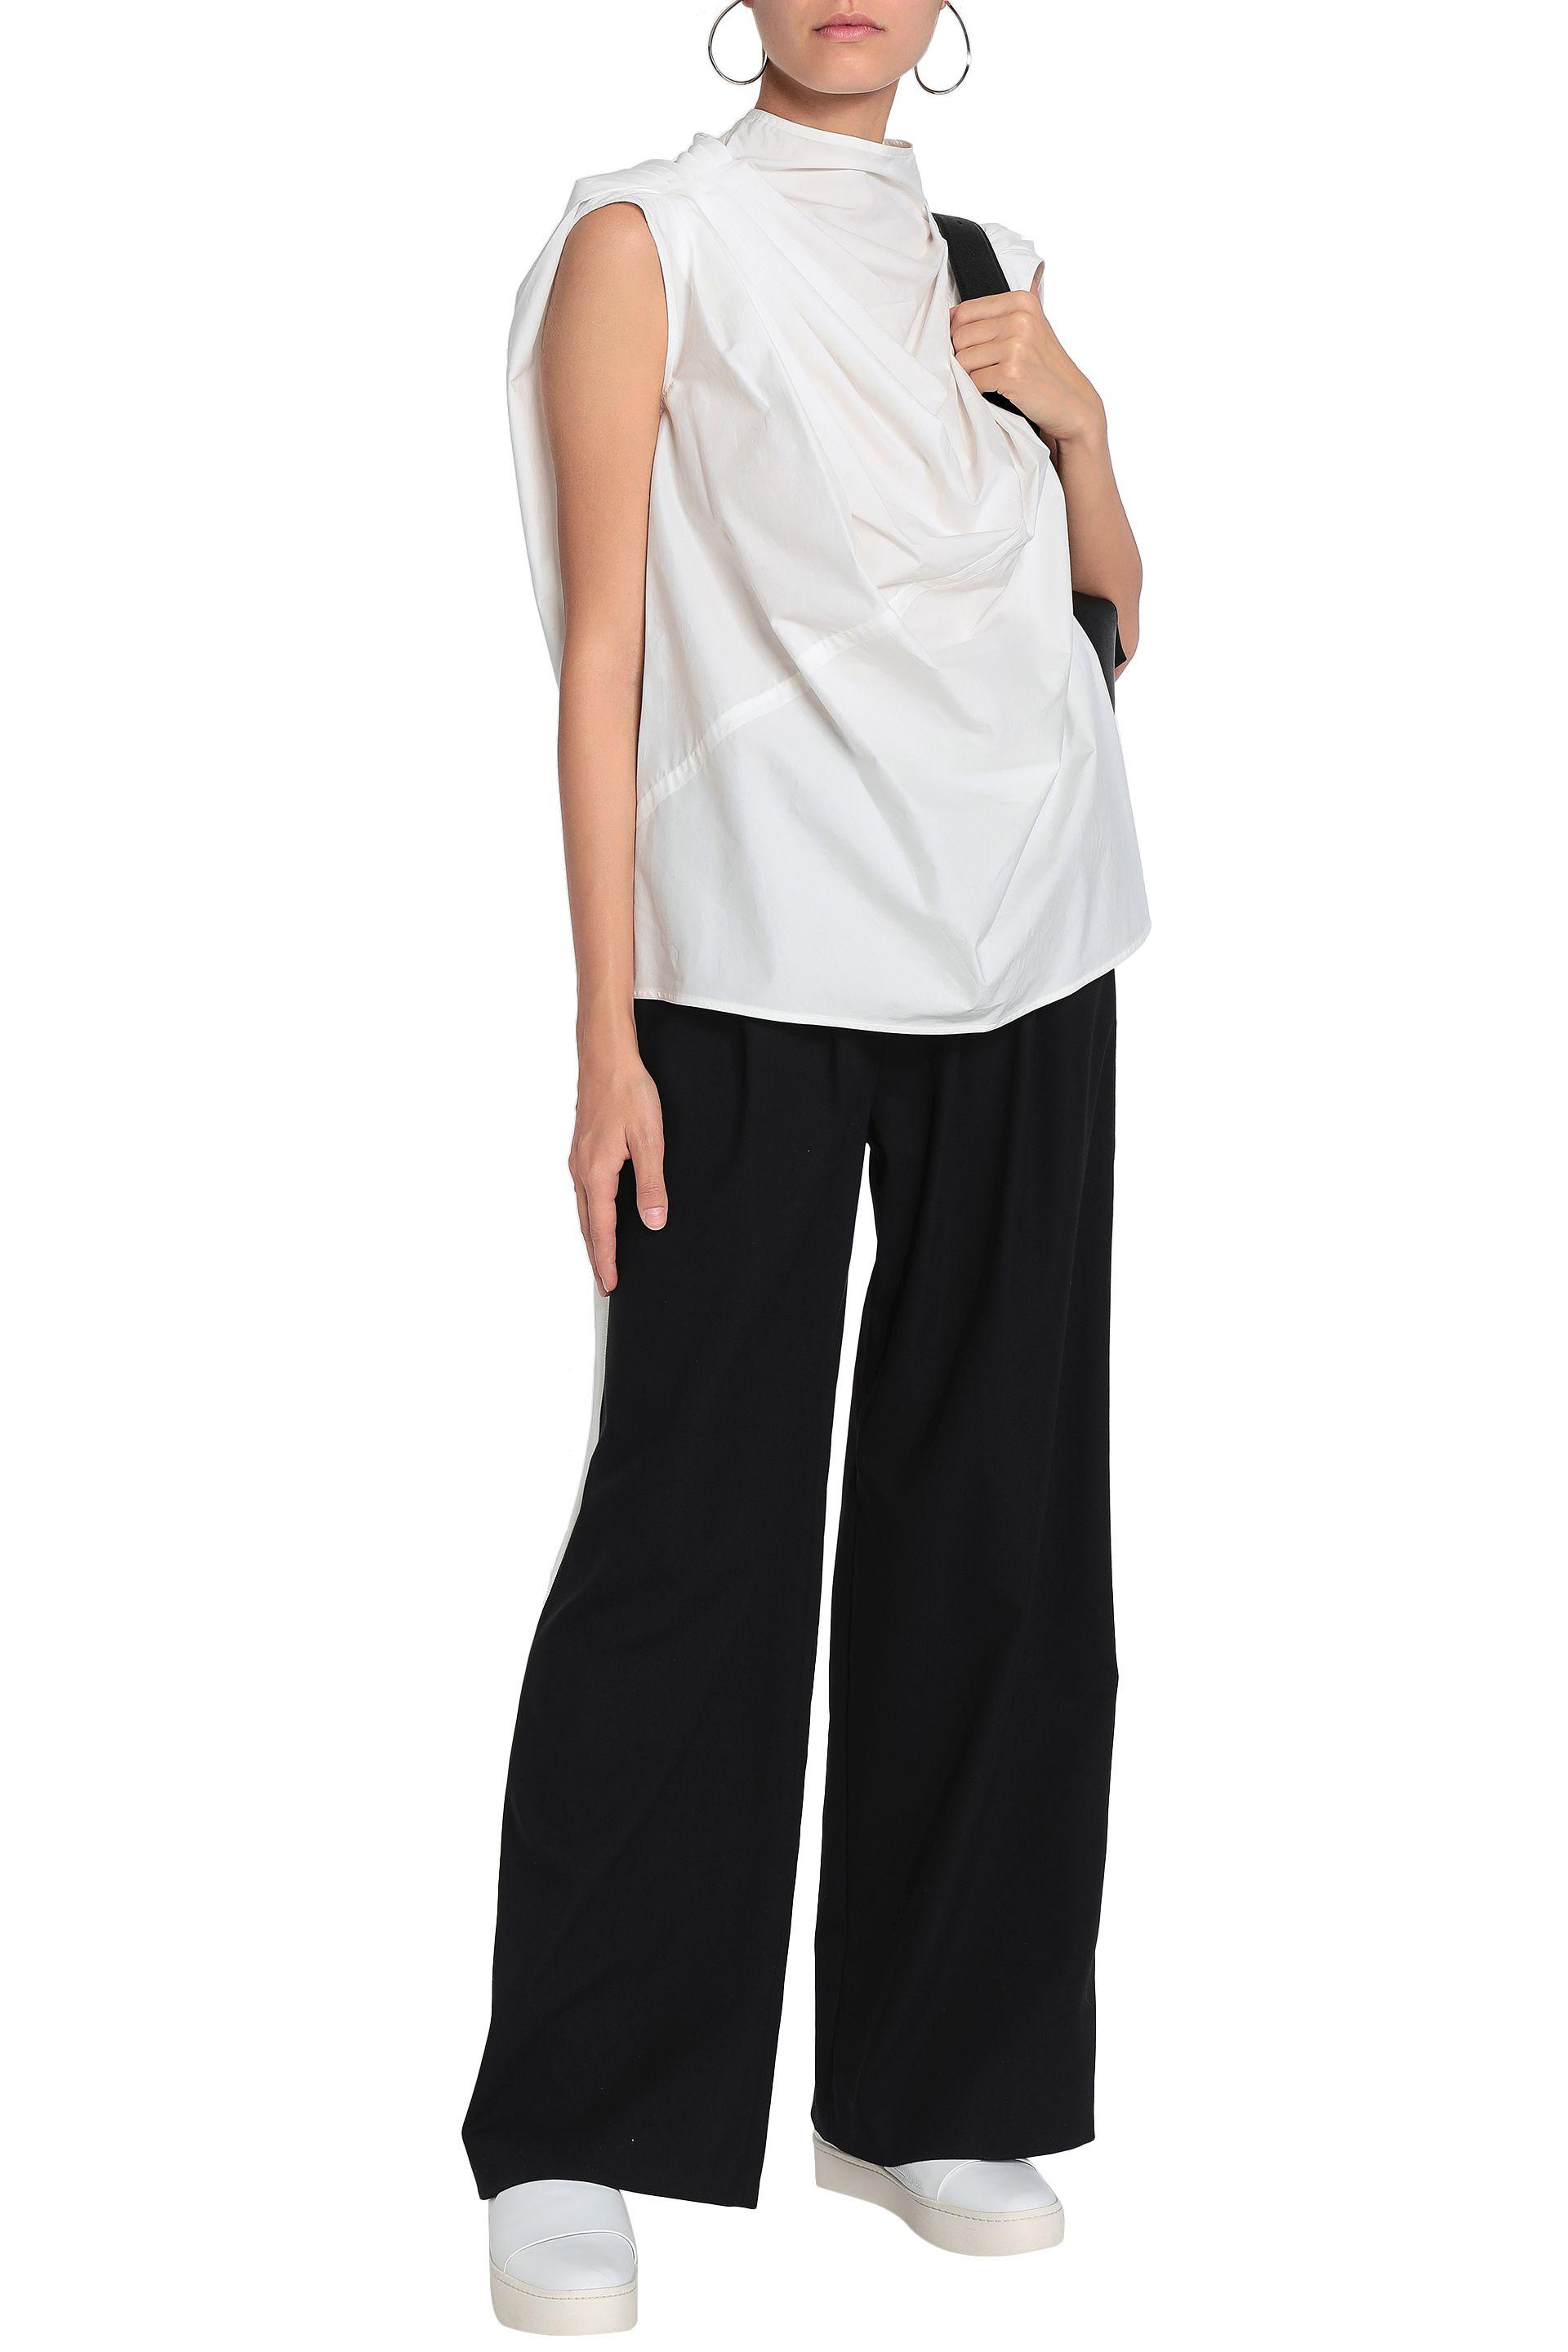 Rick Owens Draped Cotton-poplin Top in White - Lyst 9610dfbdb